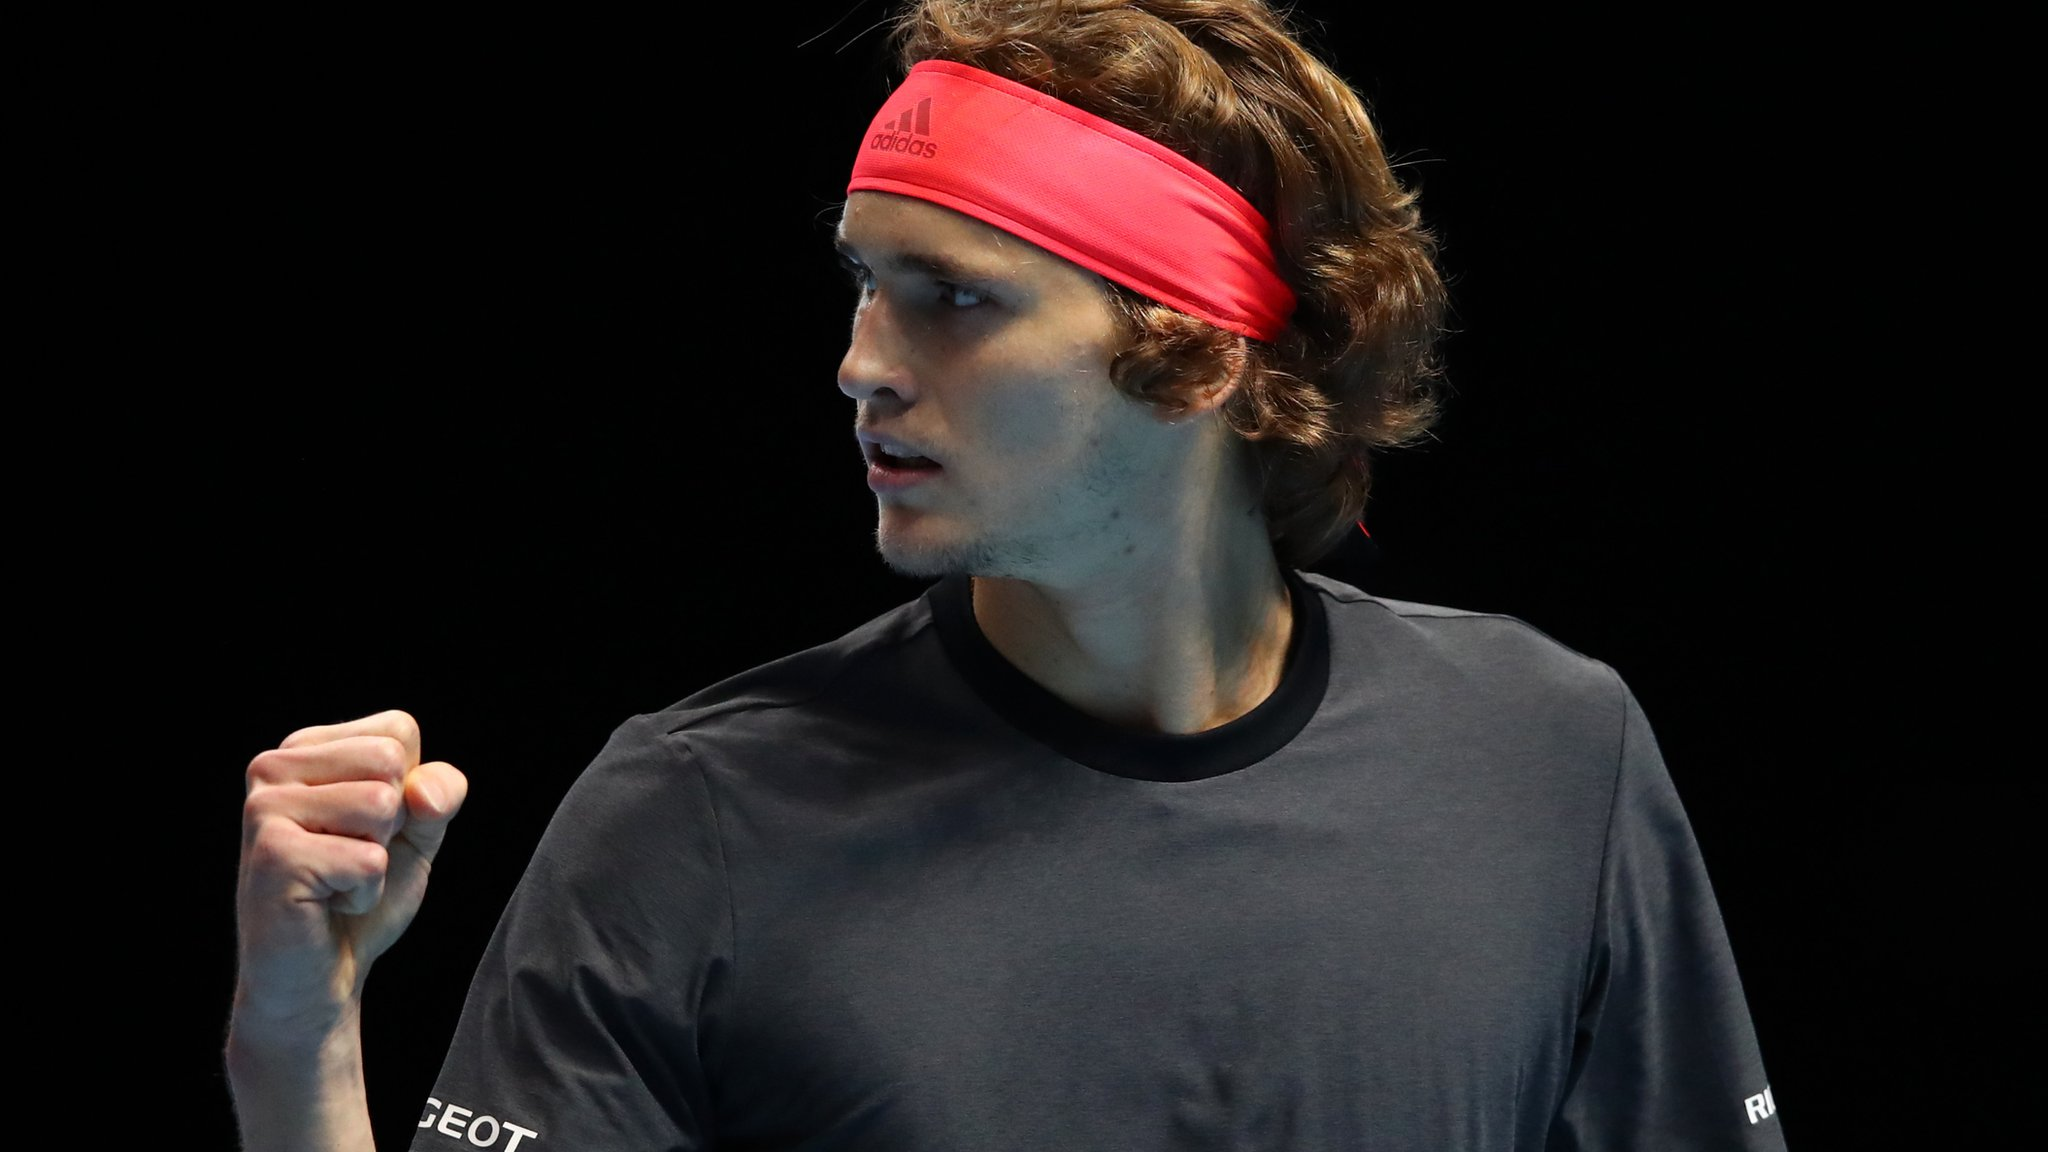 Zverev beats Federer but faces boos over tie-break incident